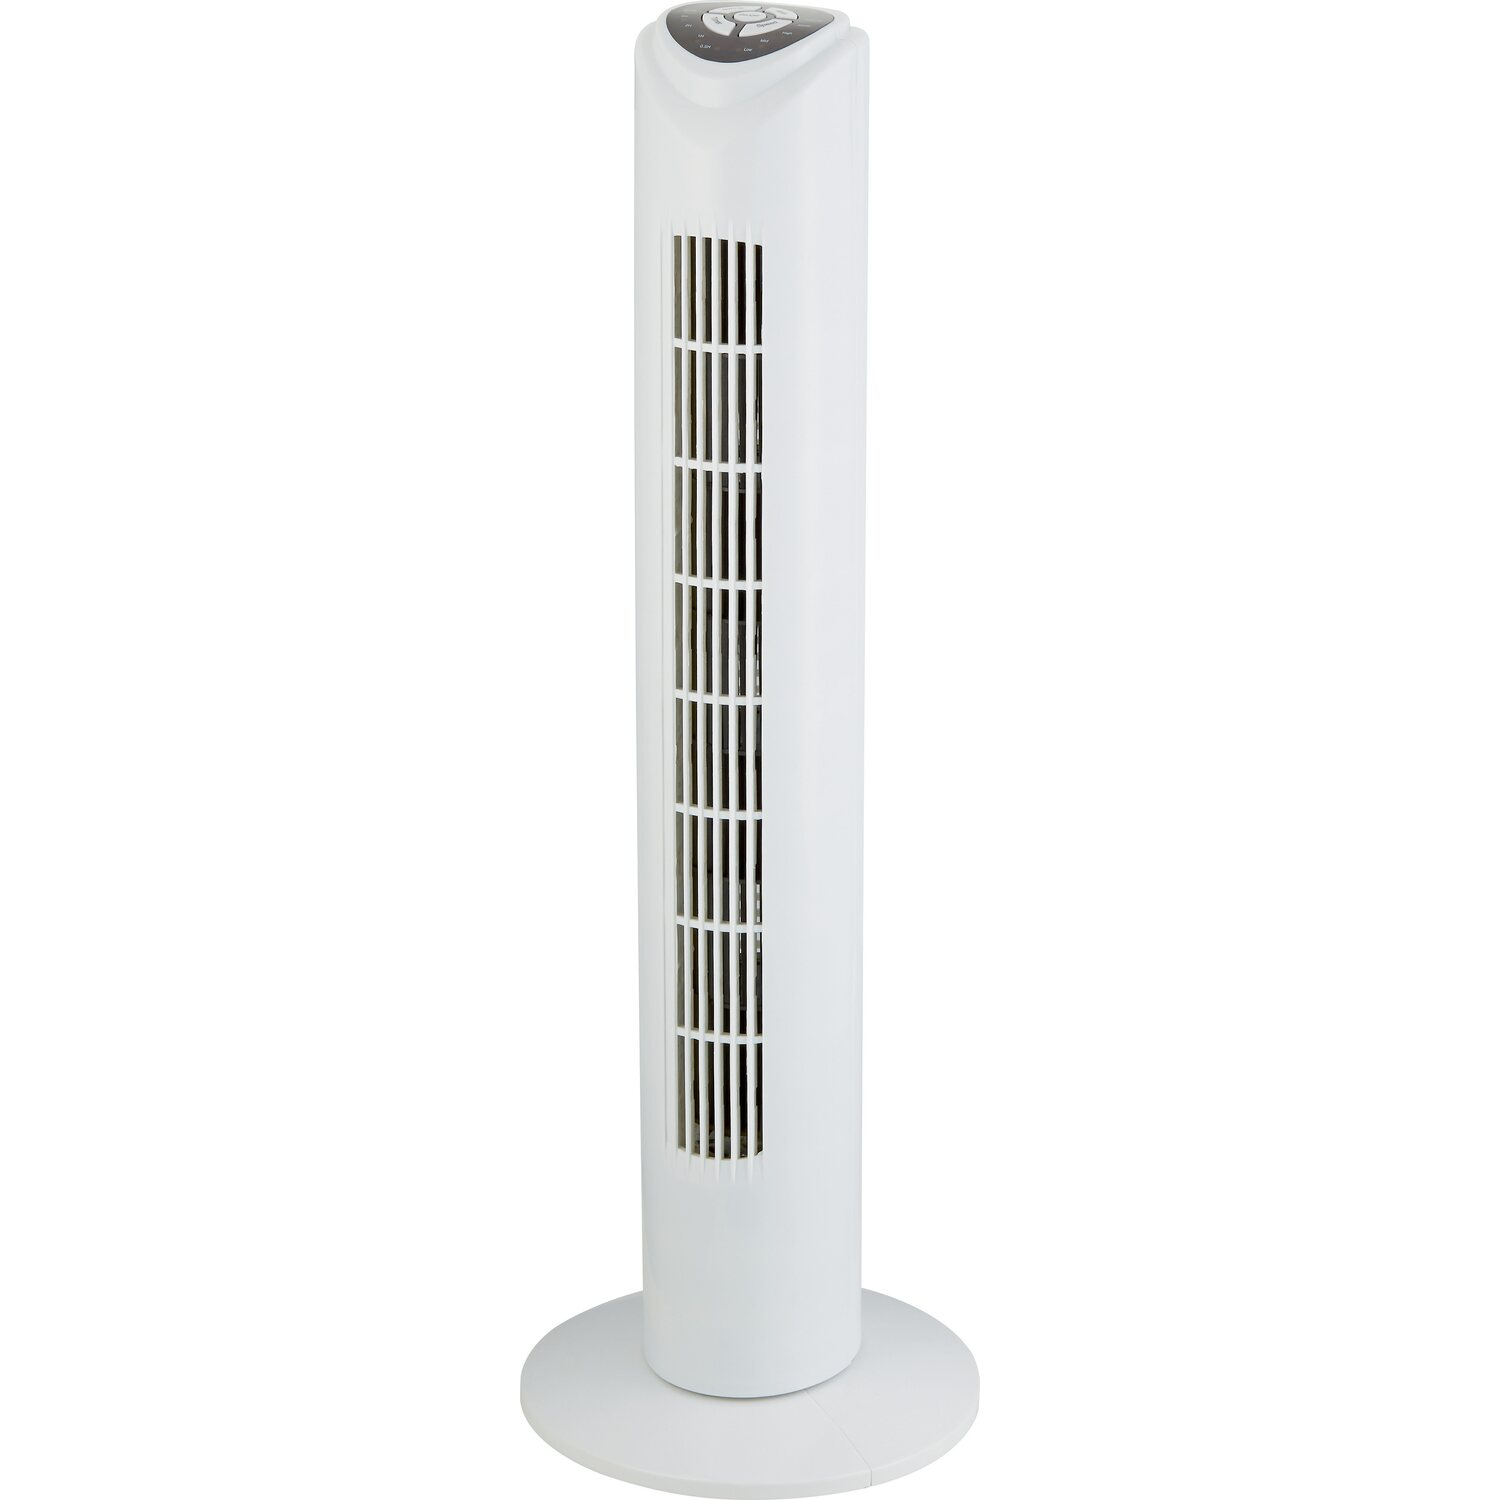 Ventilatore tower con telecomando 81 cm bianco acquista da obi for Obi ventilatori